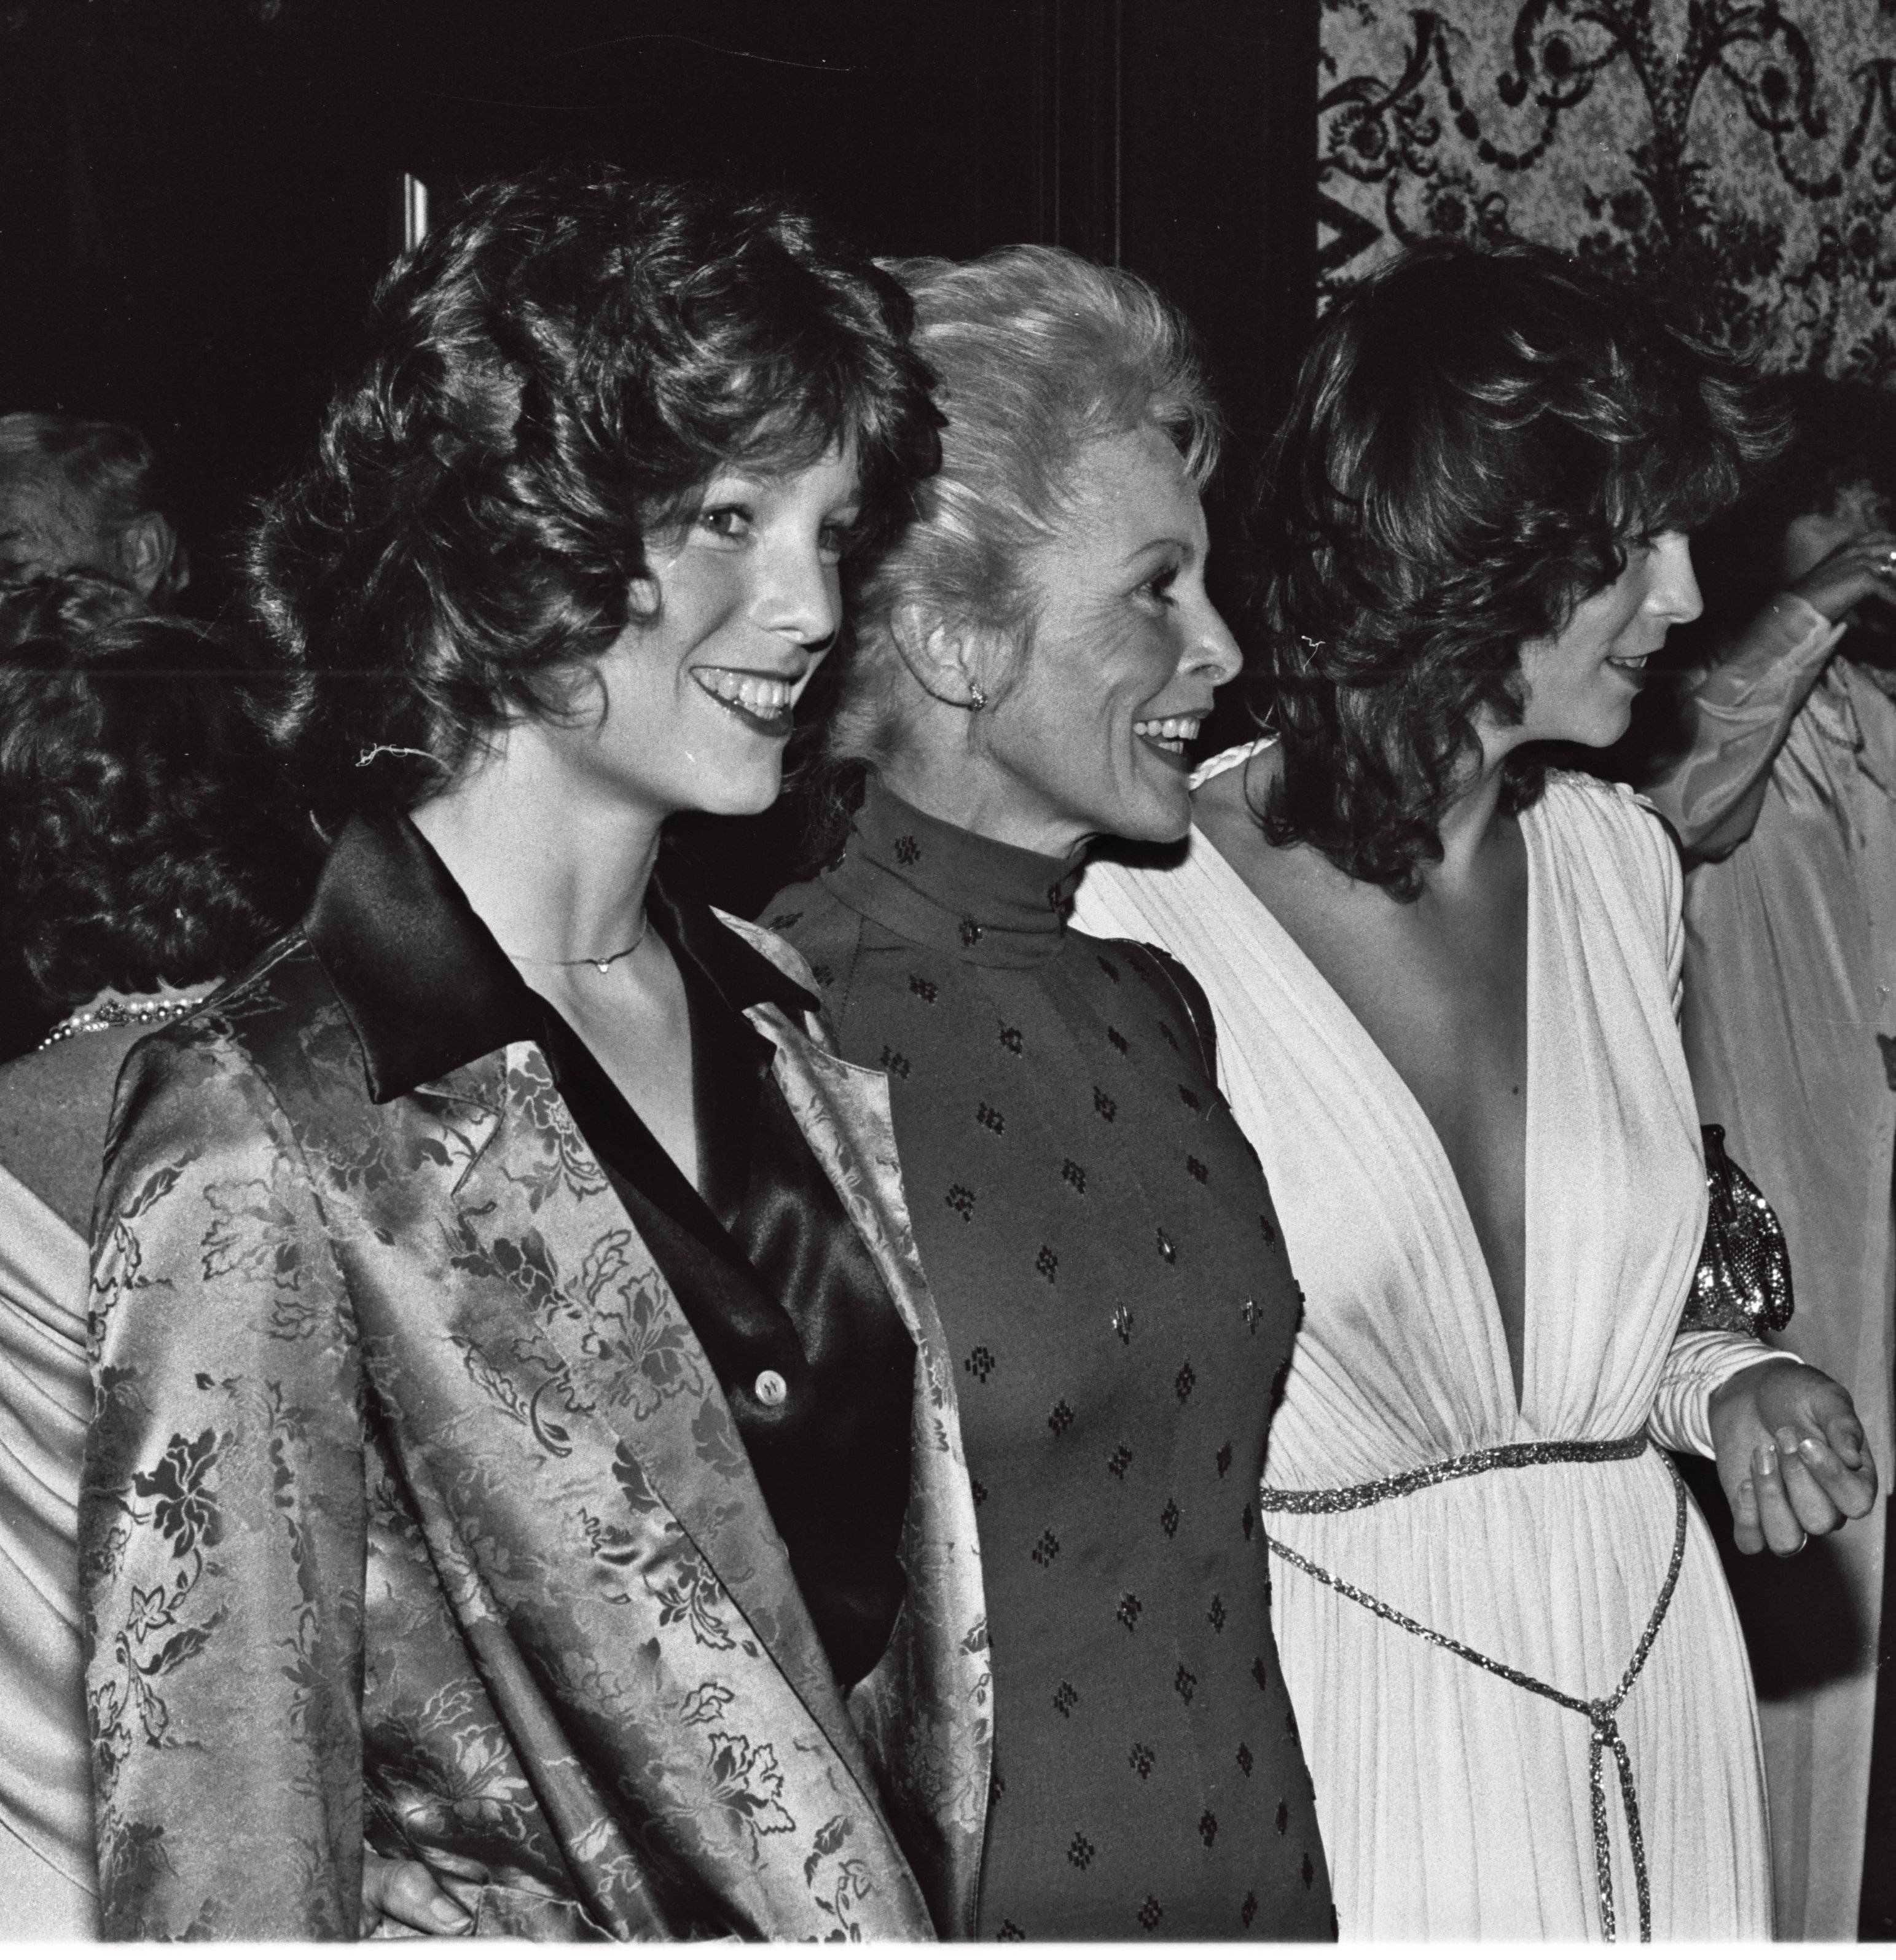 Janet Leigh (middle) with her daughters Kelly Curtis (left) and Jamie Lee Curtis (right) at the National Film Society convention in May 1979 | Image Source: Wikimedia Commons